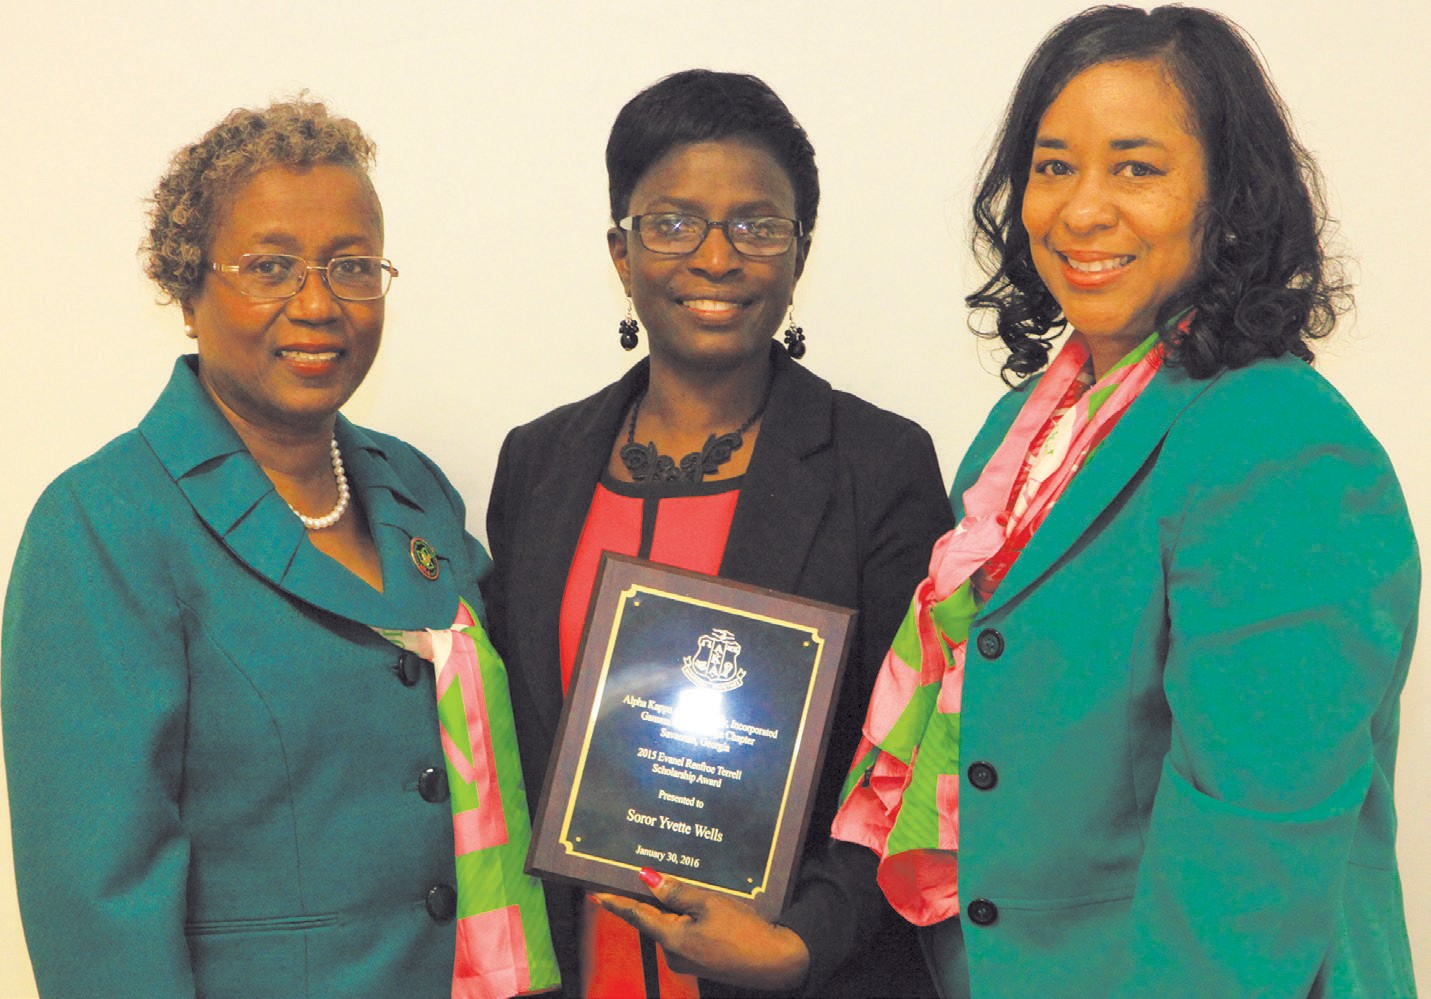 Mary Coleman, Awards Chairman; Yvette Wells, Evanel Renfroe Terrell Scholarship Award; & S. Renee Grant, President of Gamma Sigma Omega Chapter